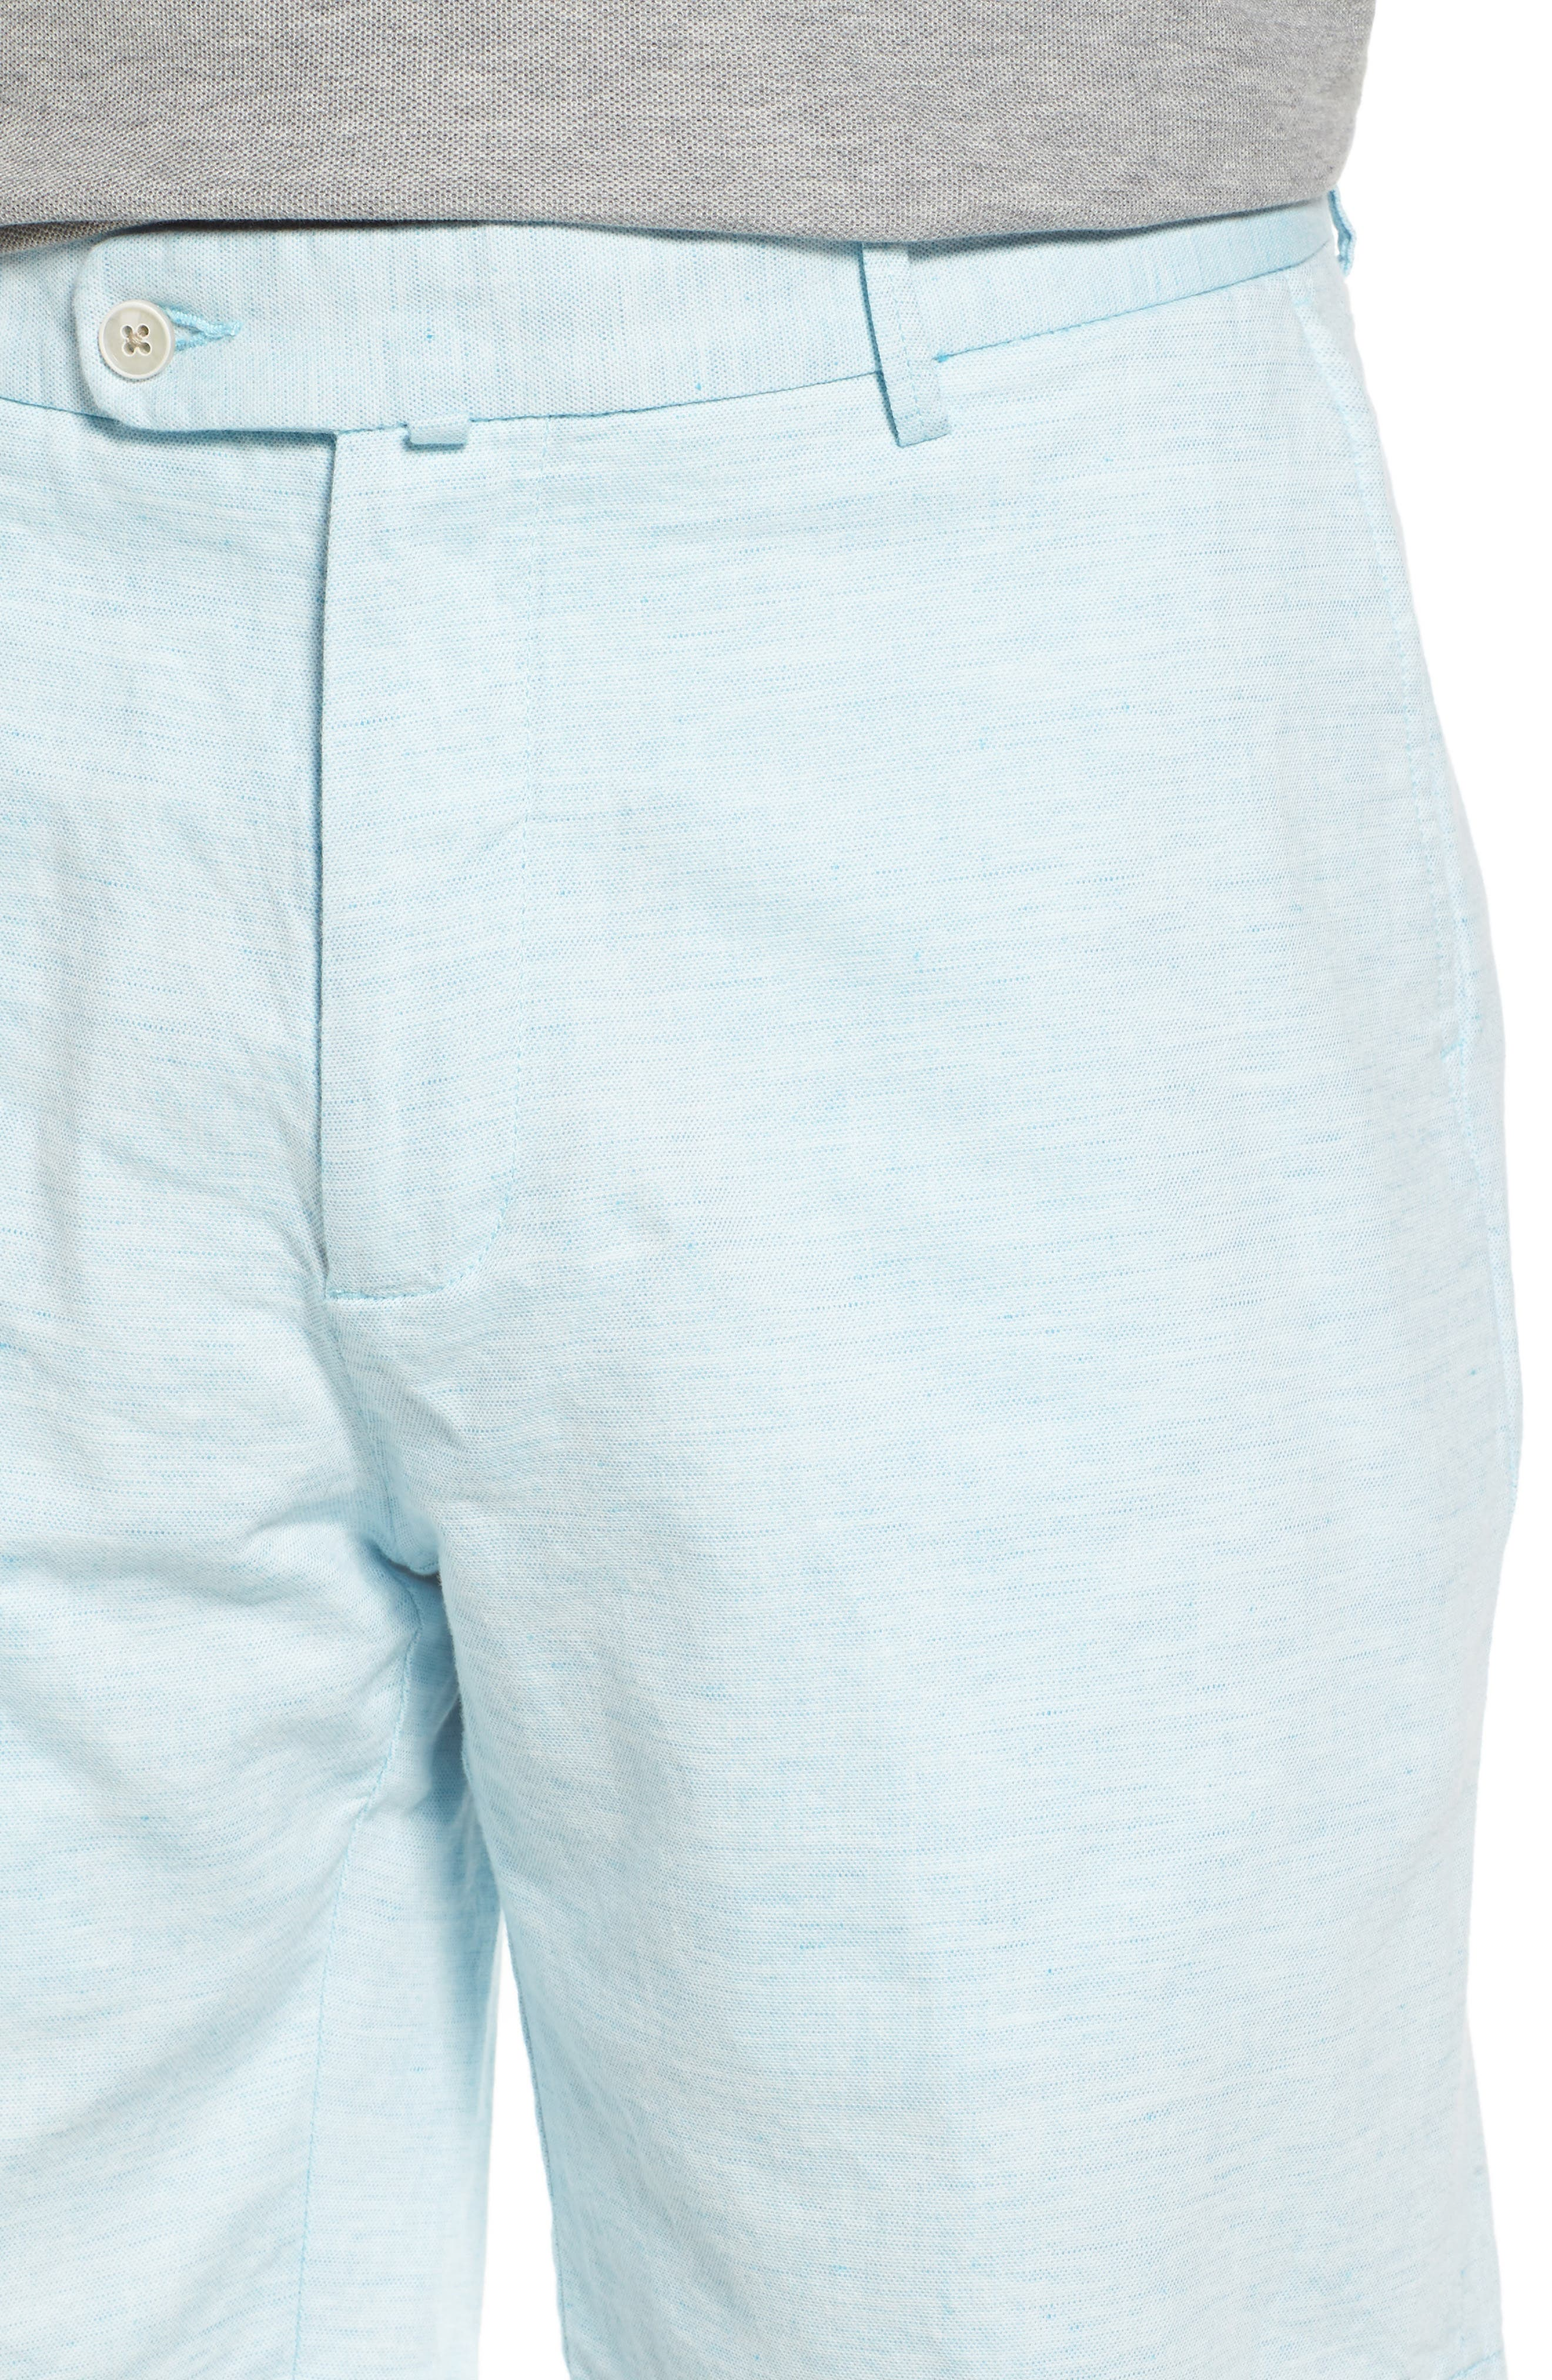 Crown Cool Delave Flat Front Shorts,                             Alternate thumbnail 4, color,                             477